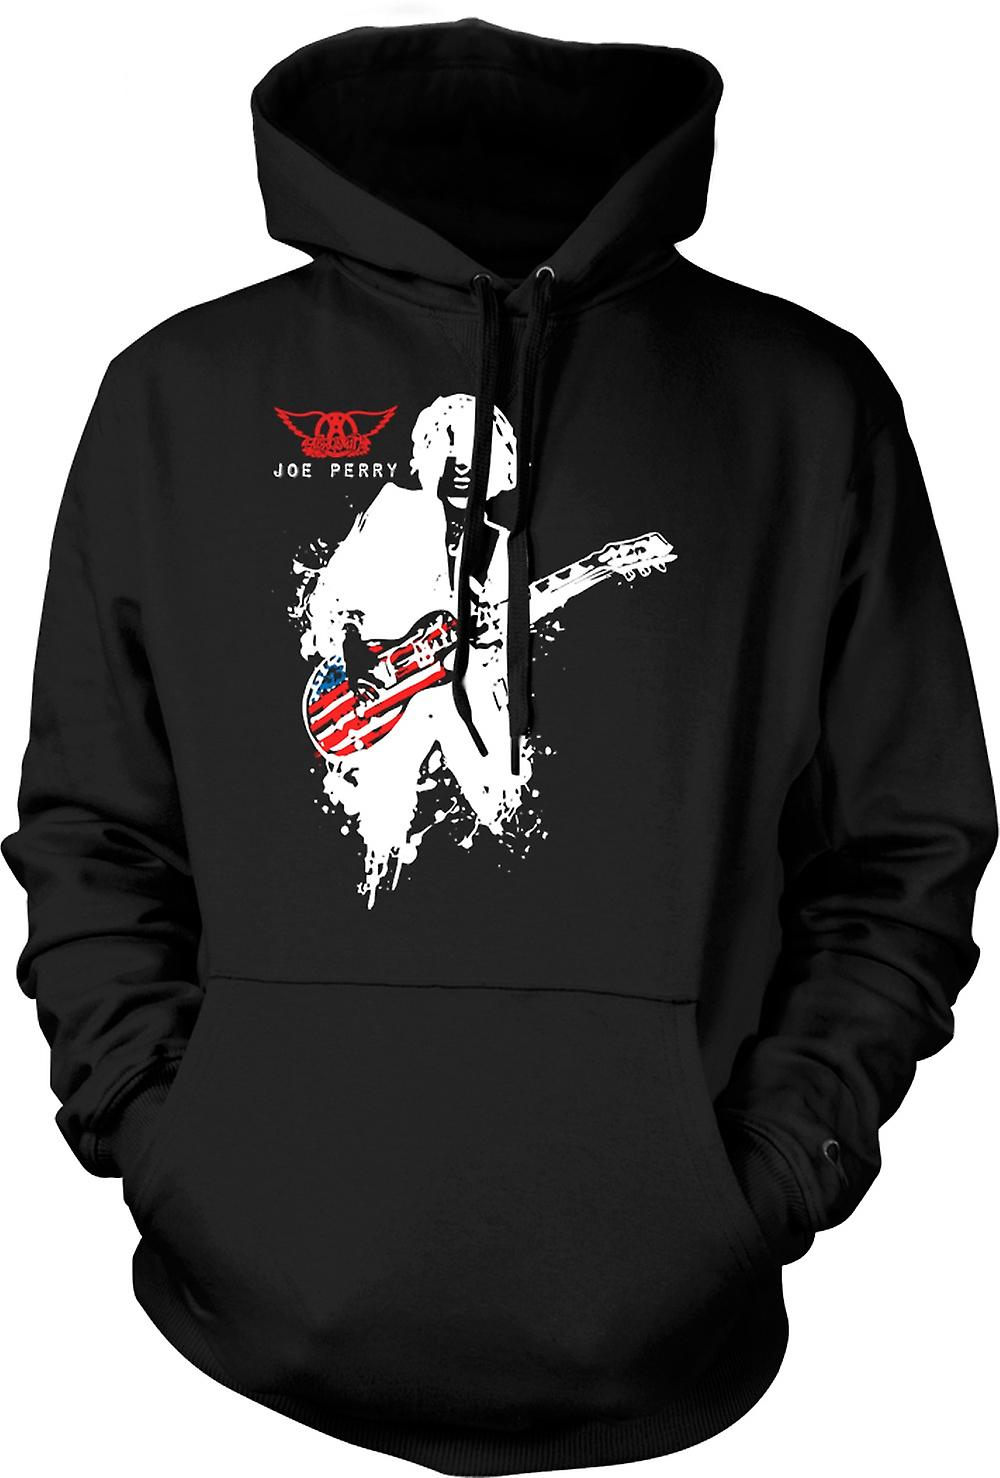 Barn Hoodie - Aerosmith - Joe Perry - gitarr